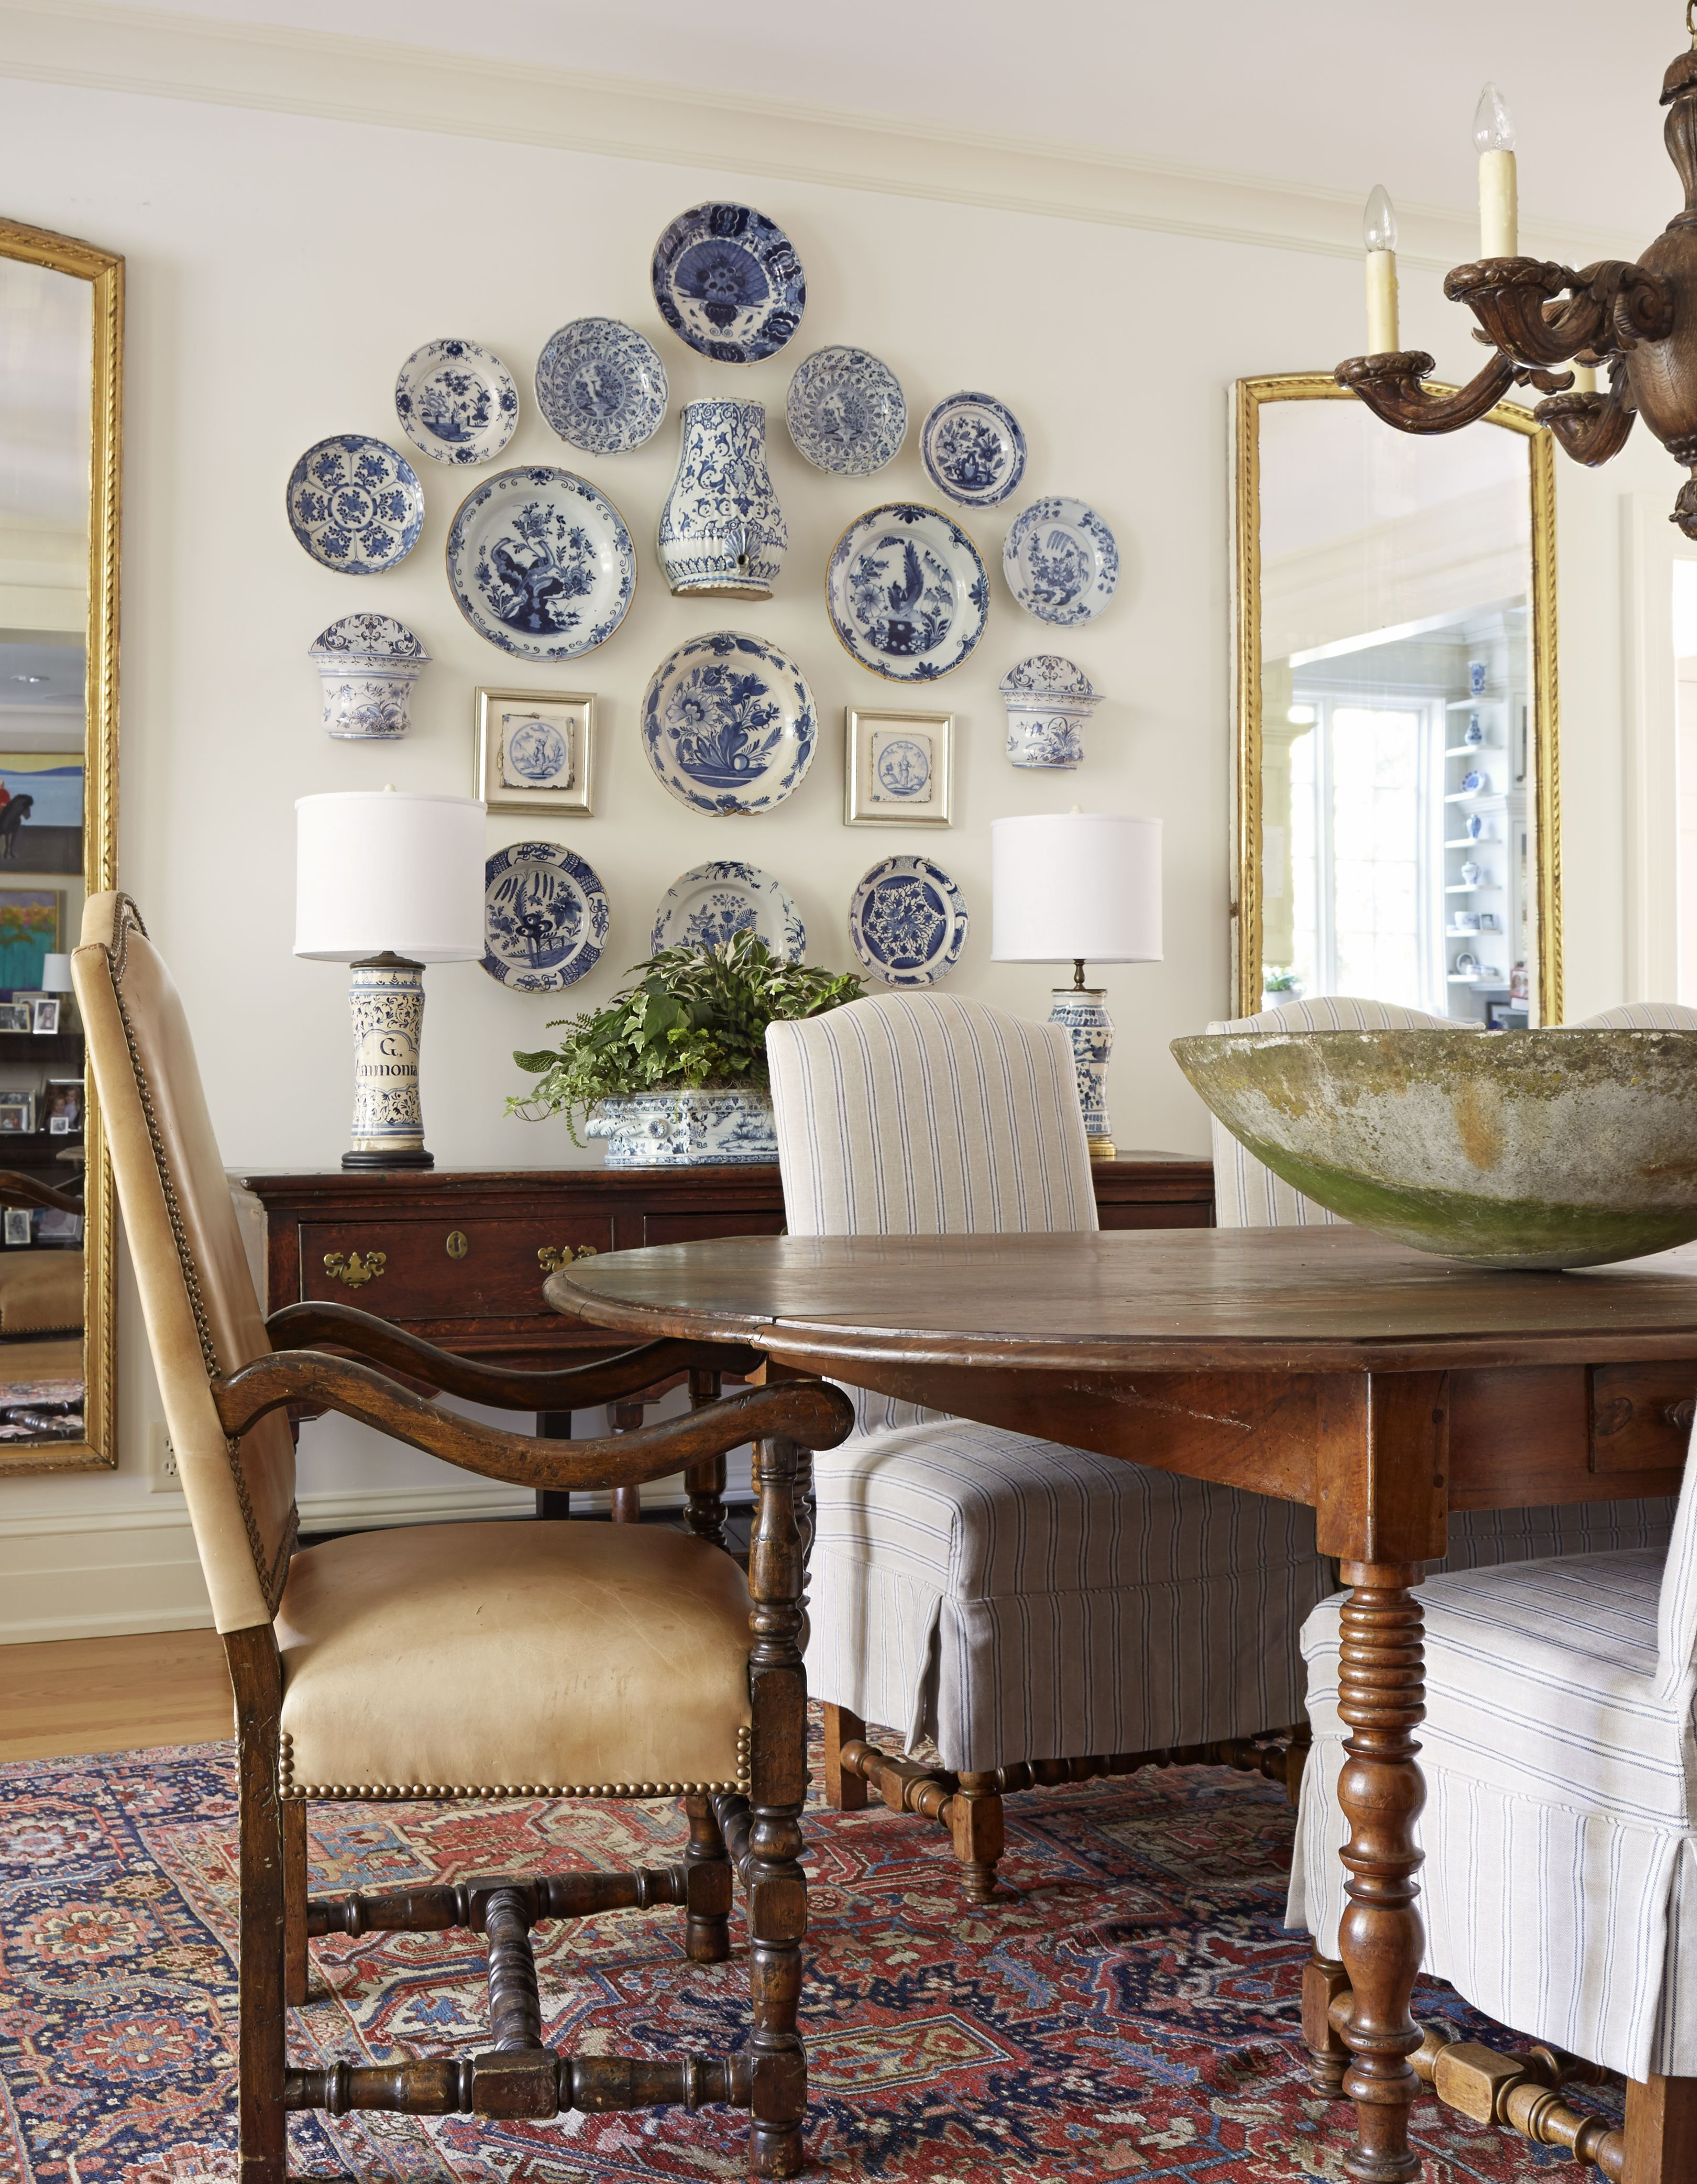 Delft Collection On The Dining Room Wall French Country Dining